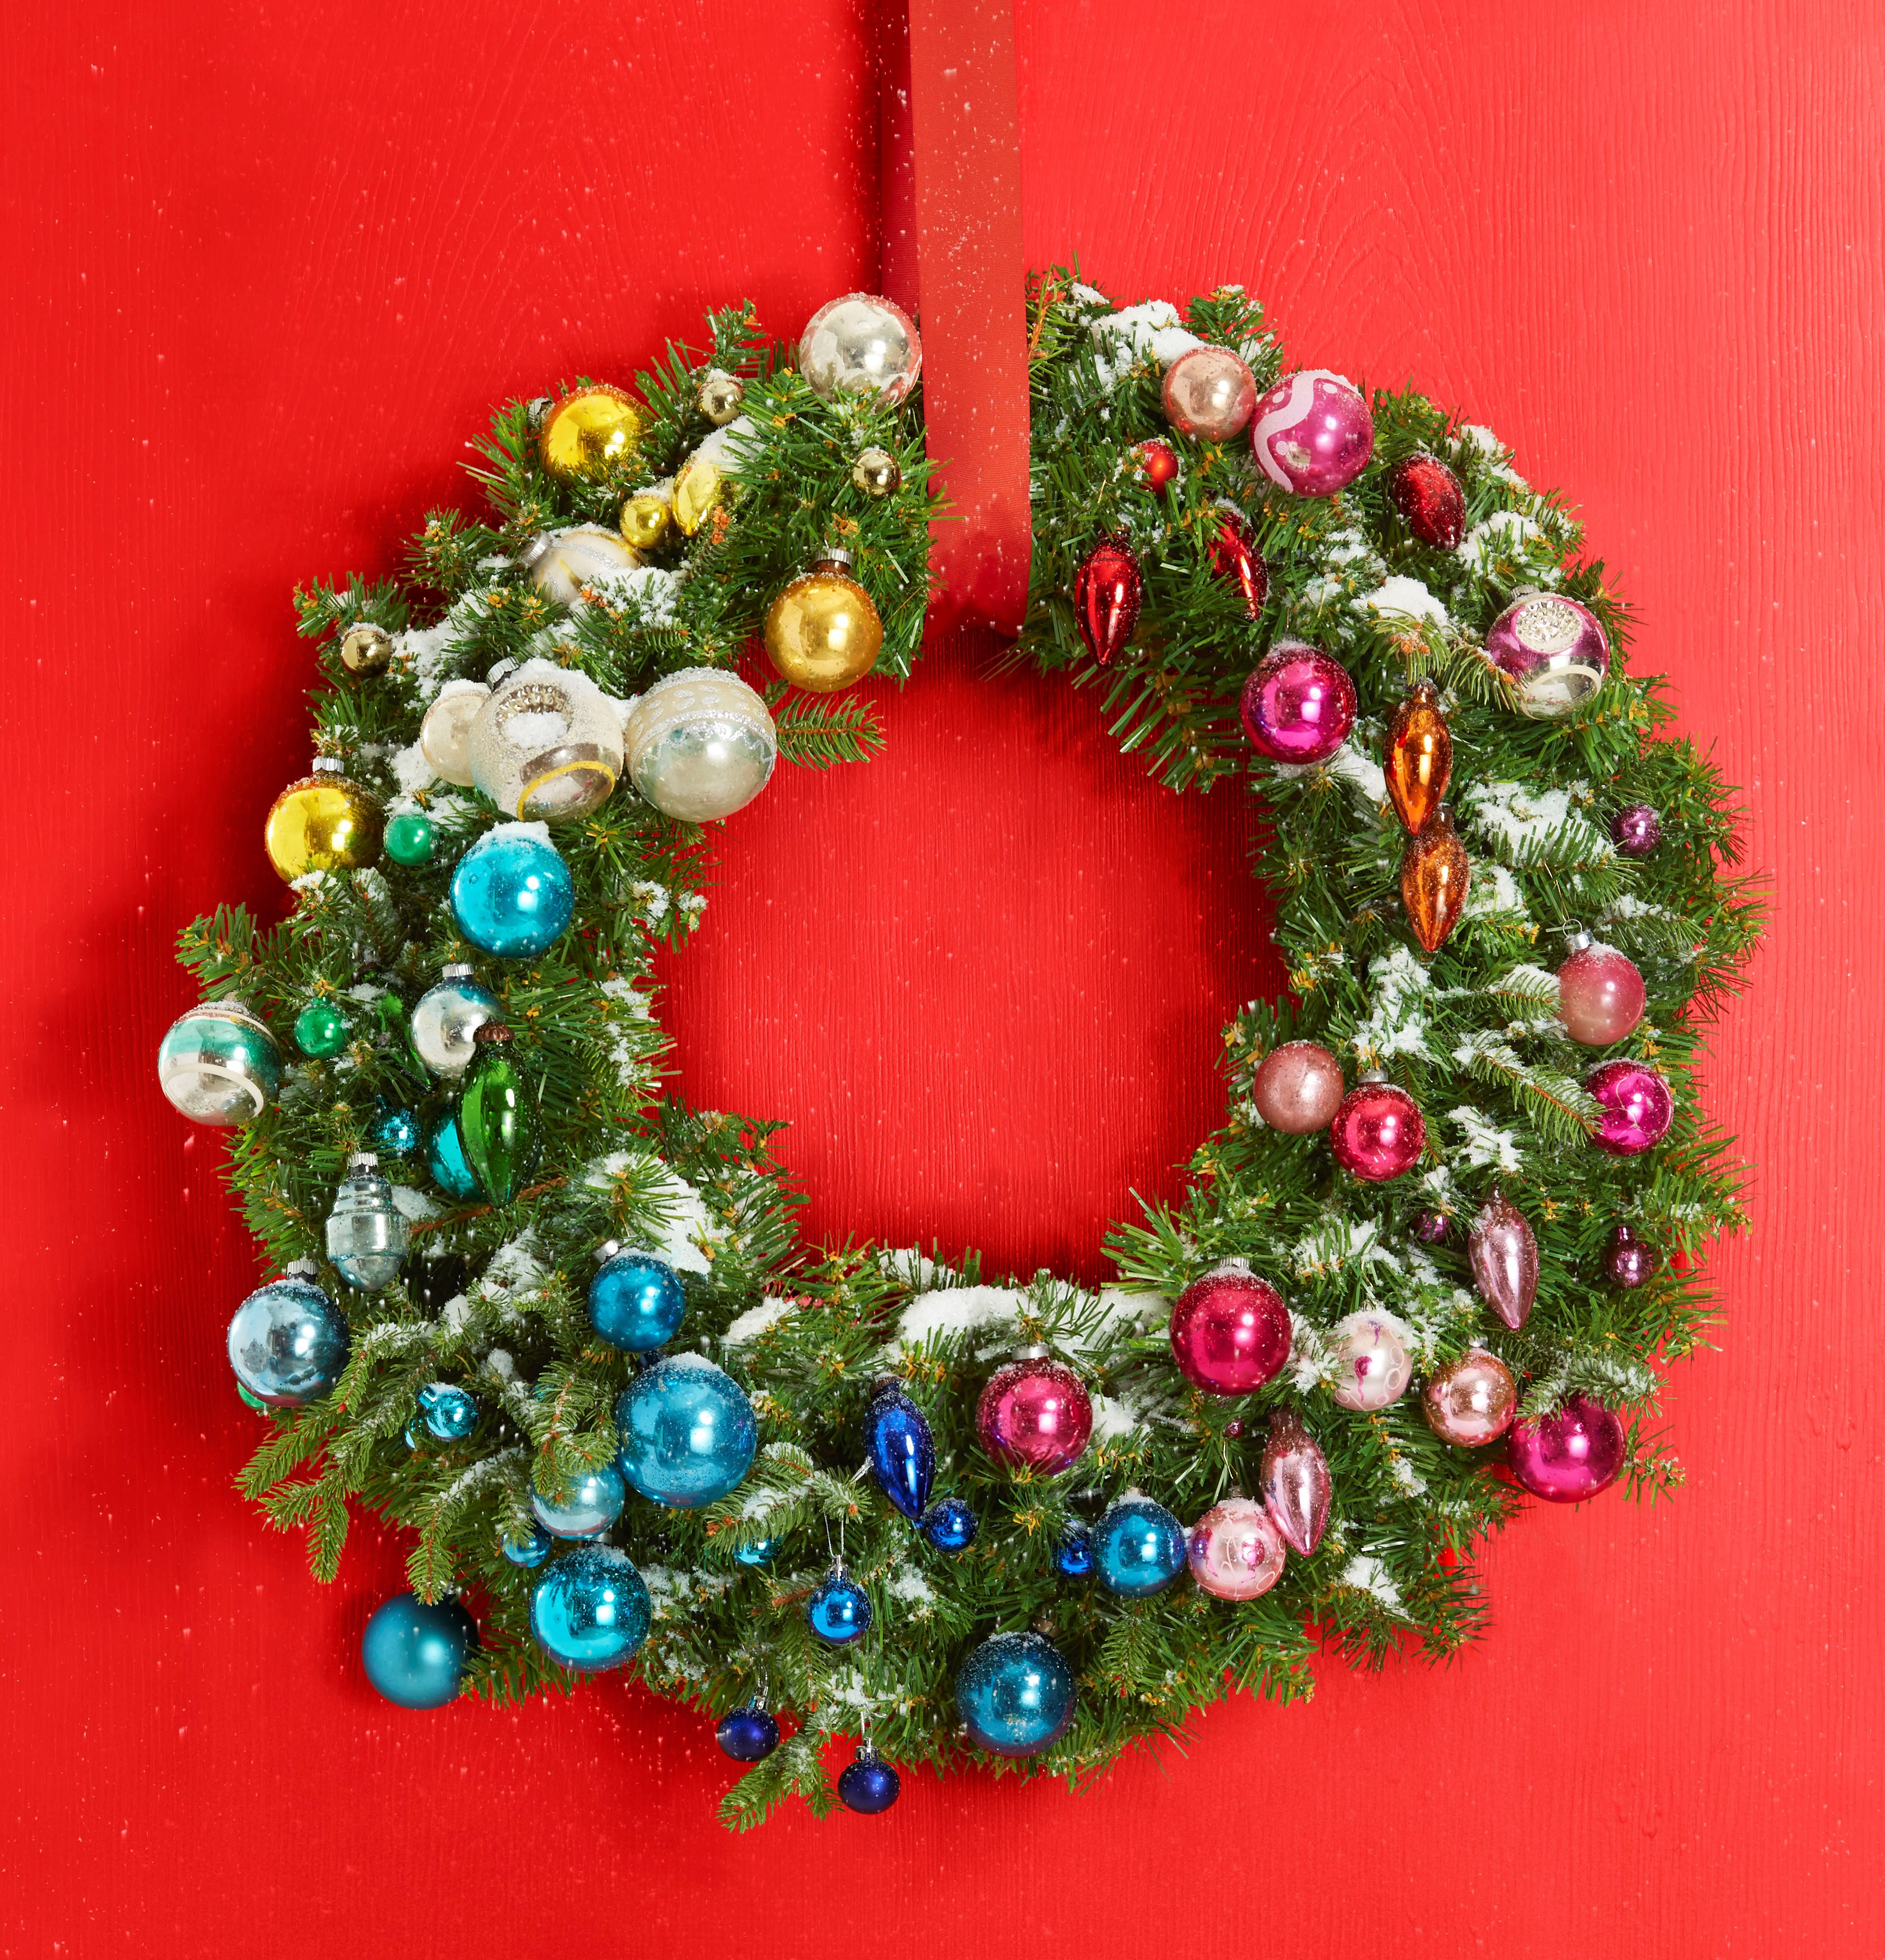 48 diy christmas wreaths holiday decor and crafts Christmas wreath decorations